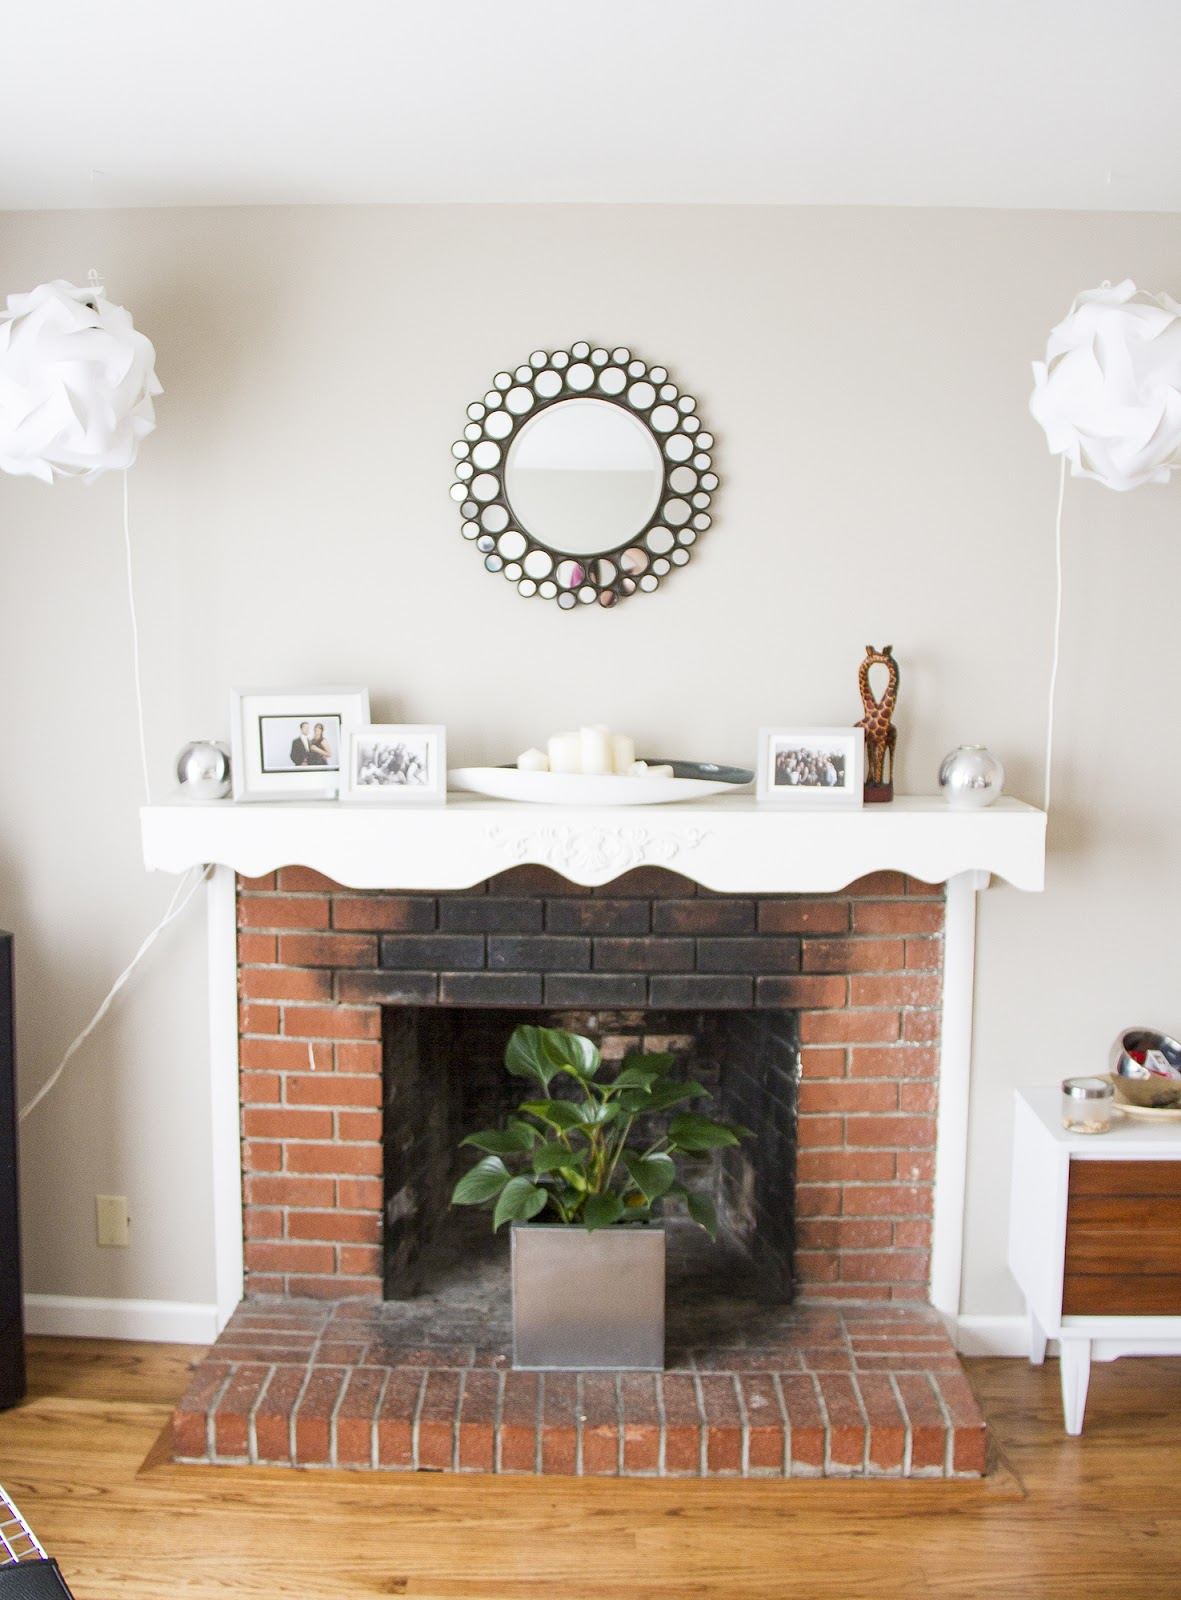 swingncocoa fireplace makeover part 1 a crispy facade